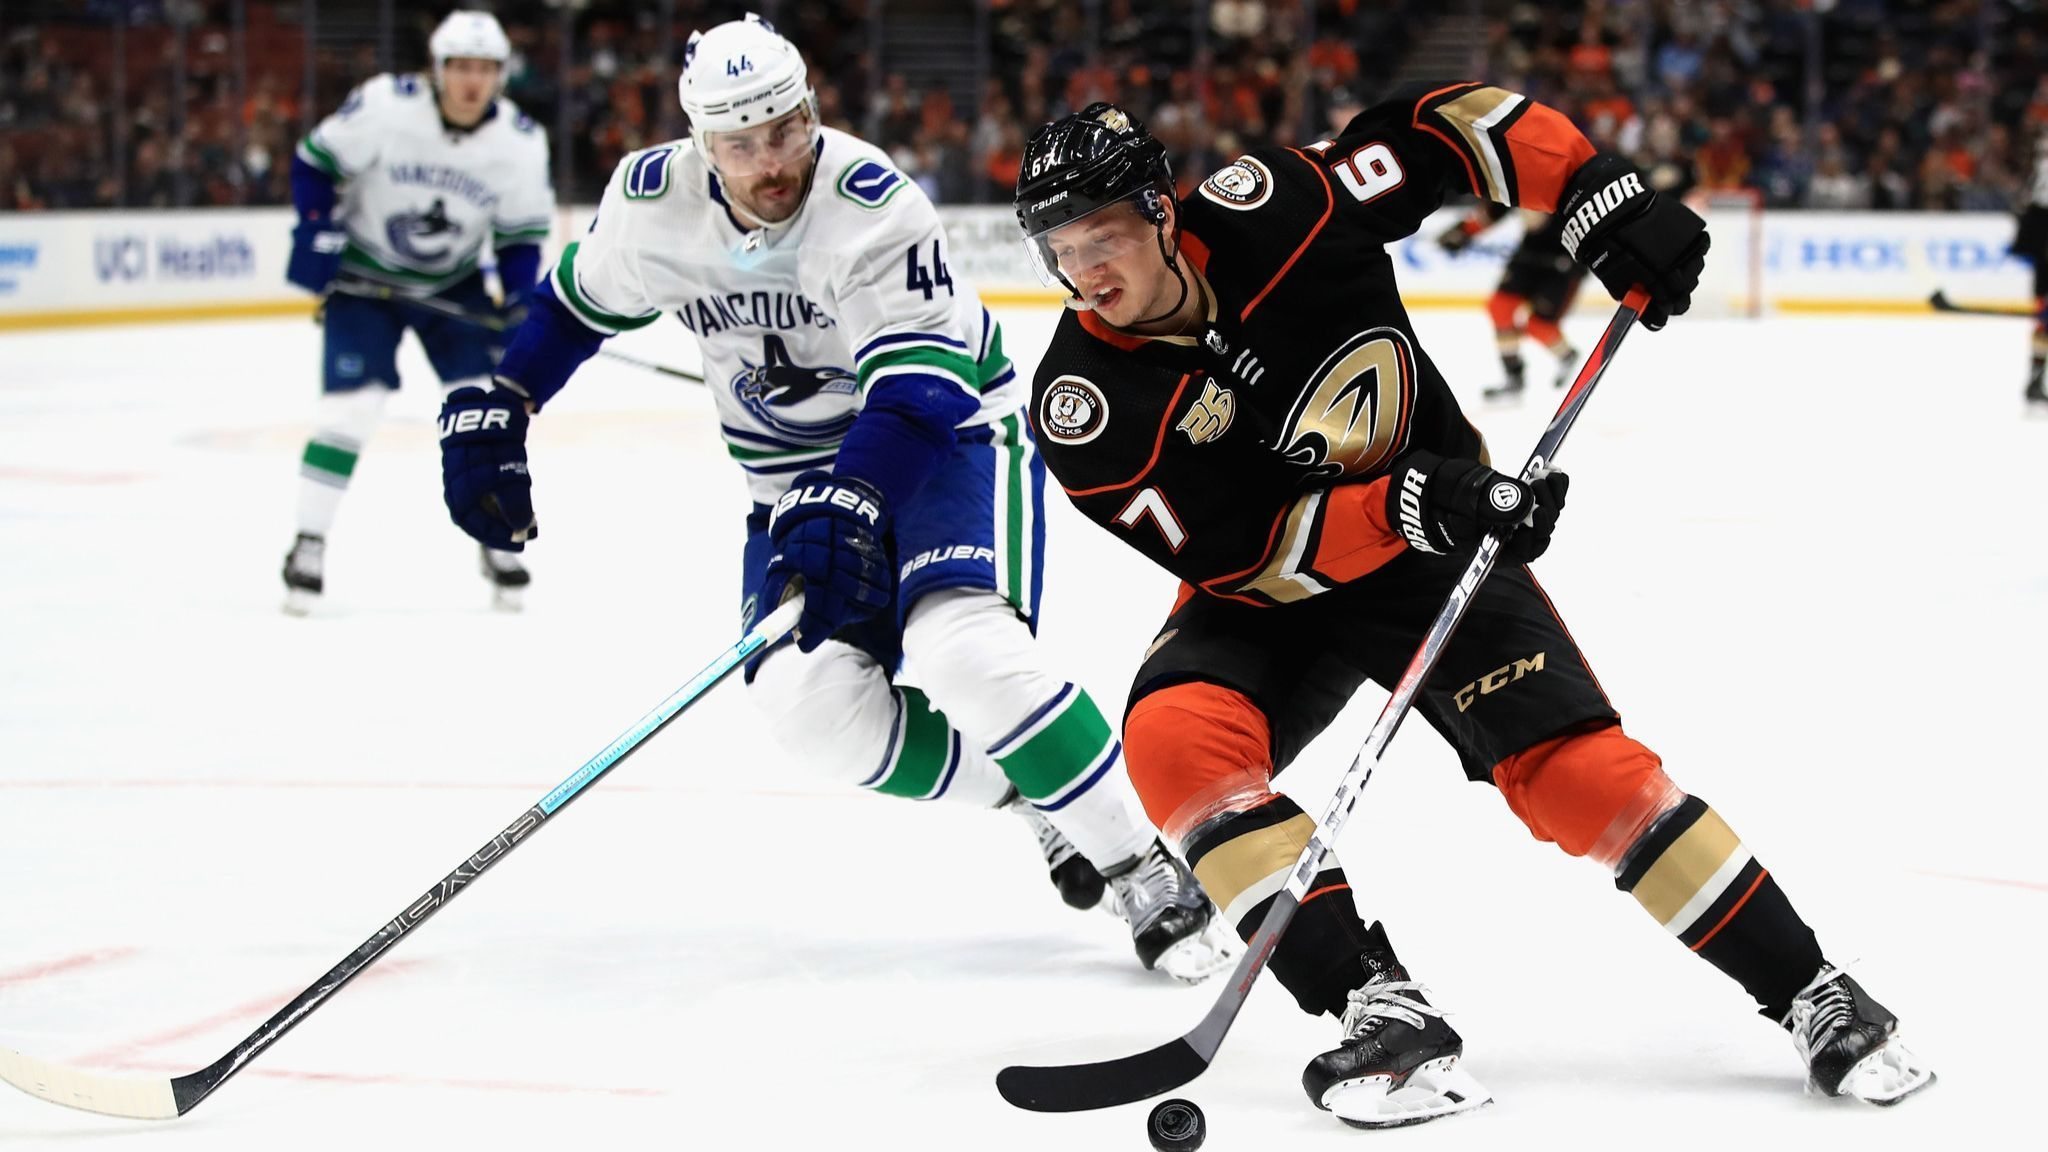 Goalie John Gibson is shaky in first game back, but Ducks hang on for victory over Canucks